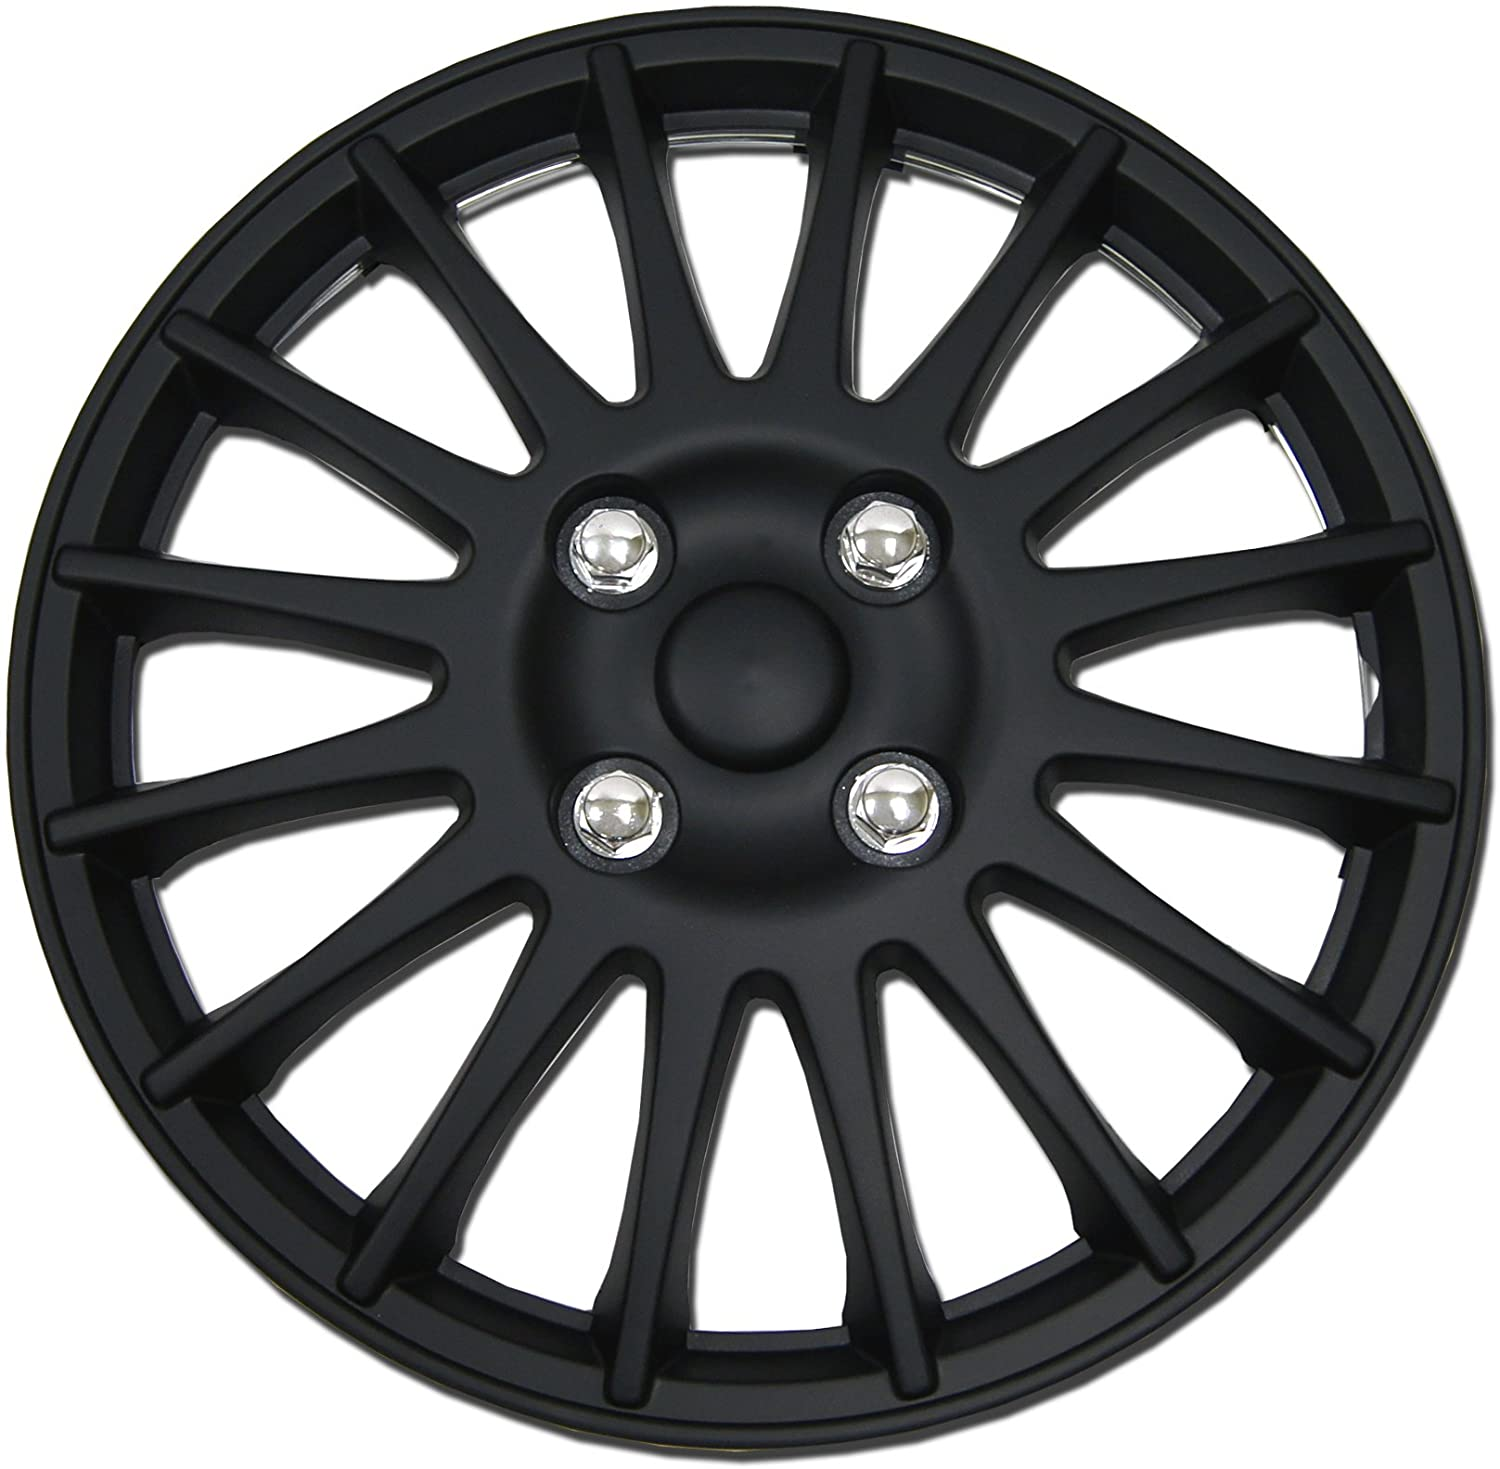 TuningPros WSC-611B15 Hubcaps Wheel Nashville-Davidson Mall Skin B Cover Matte 15-Inches Credence